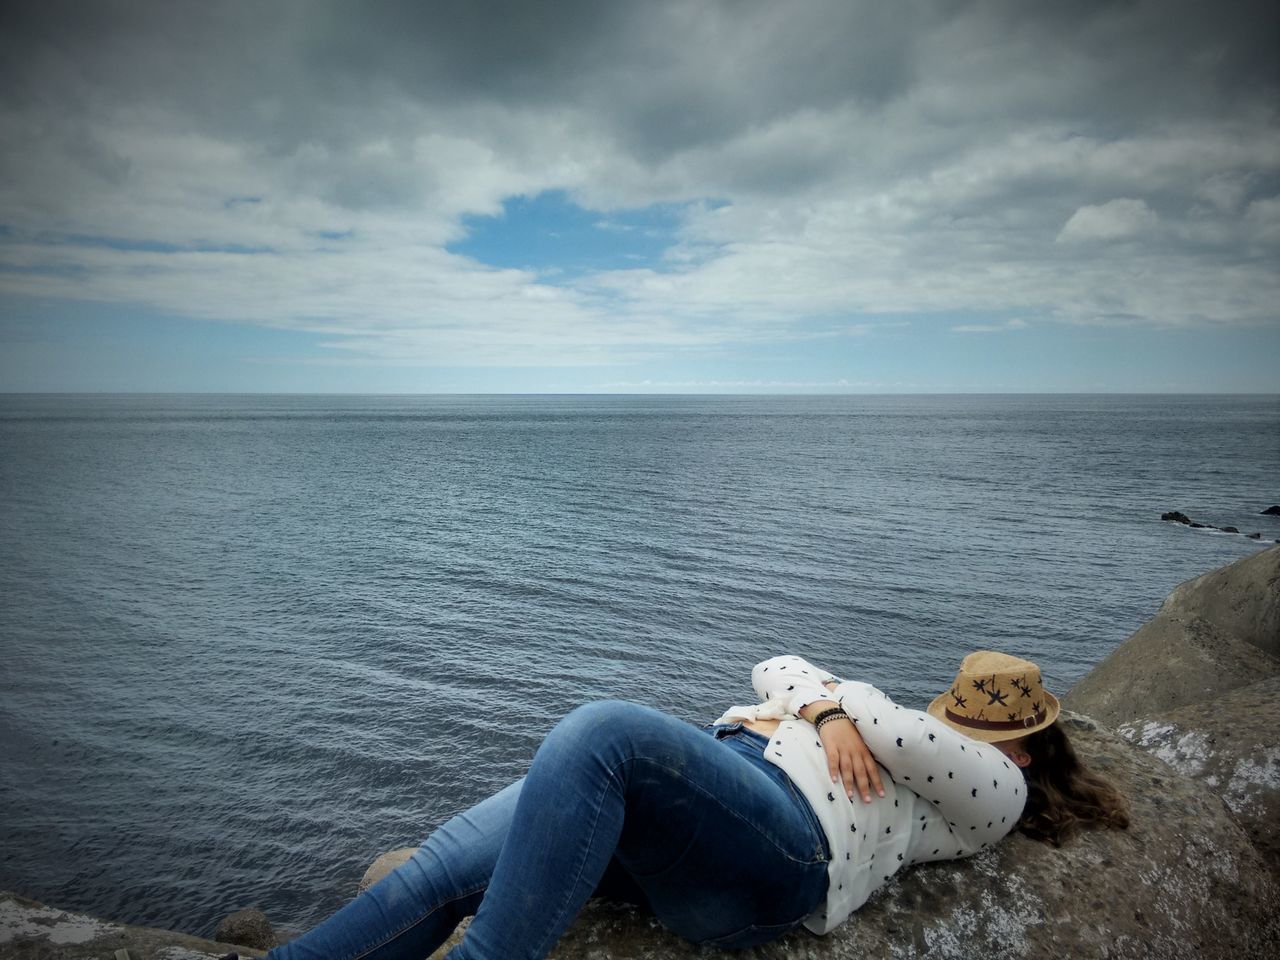 Beauty In Nature Chillin Chillin' 43 Golden Moments Coastline Girl Horizon Over Water Nature Non-urban Scene Ocean Outdoors Remote Resting Resting By The Sea Scenics Sea Shore Sky Sleeping By The Sea Tranquil Scene Tranquility Water Woman Lieblingsteil